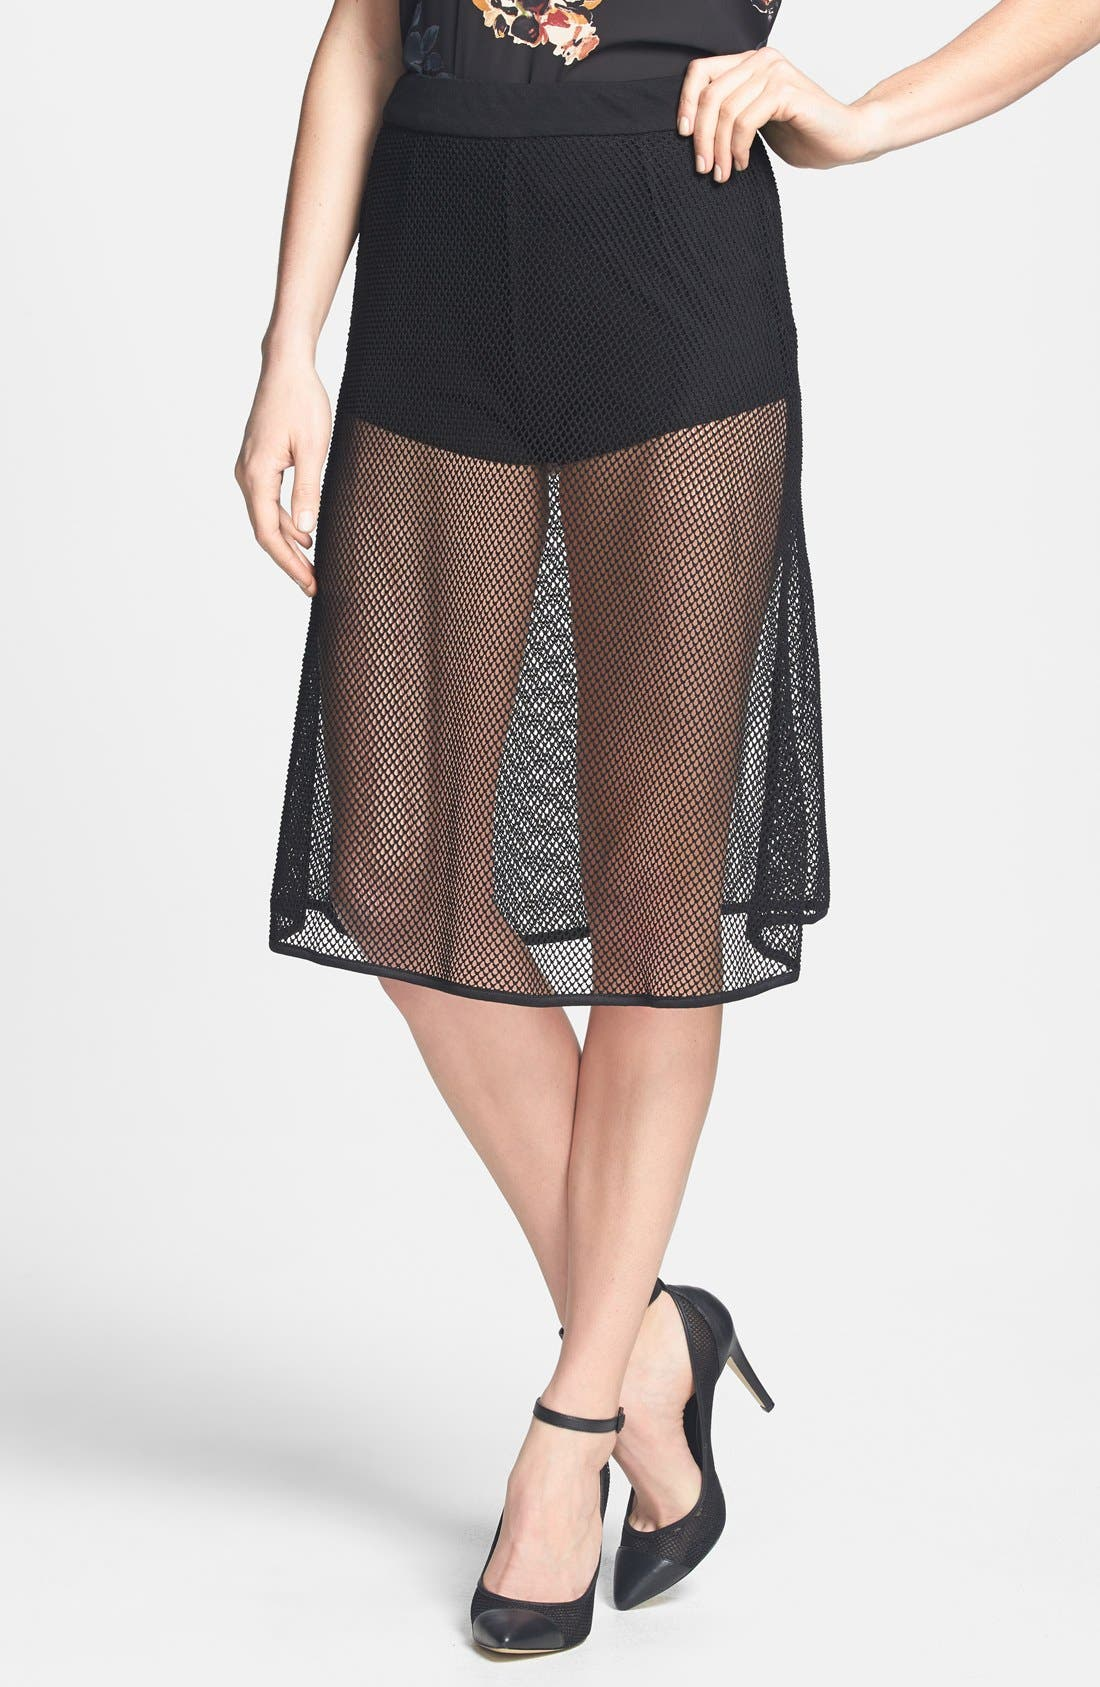 Alternate Image 1 Selected - Dirty Ballerina Mesh A-Line Skirt